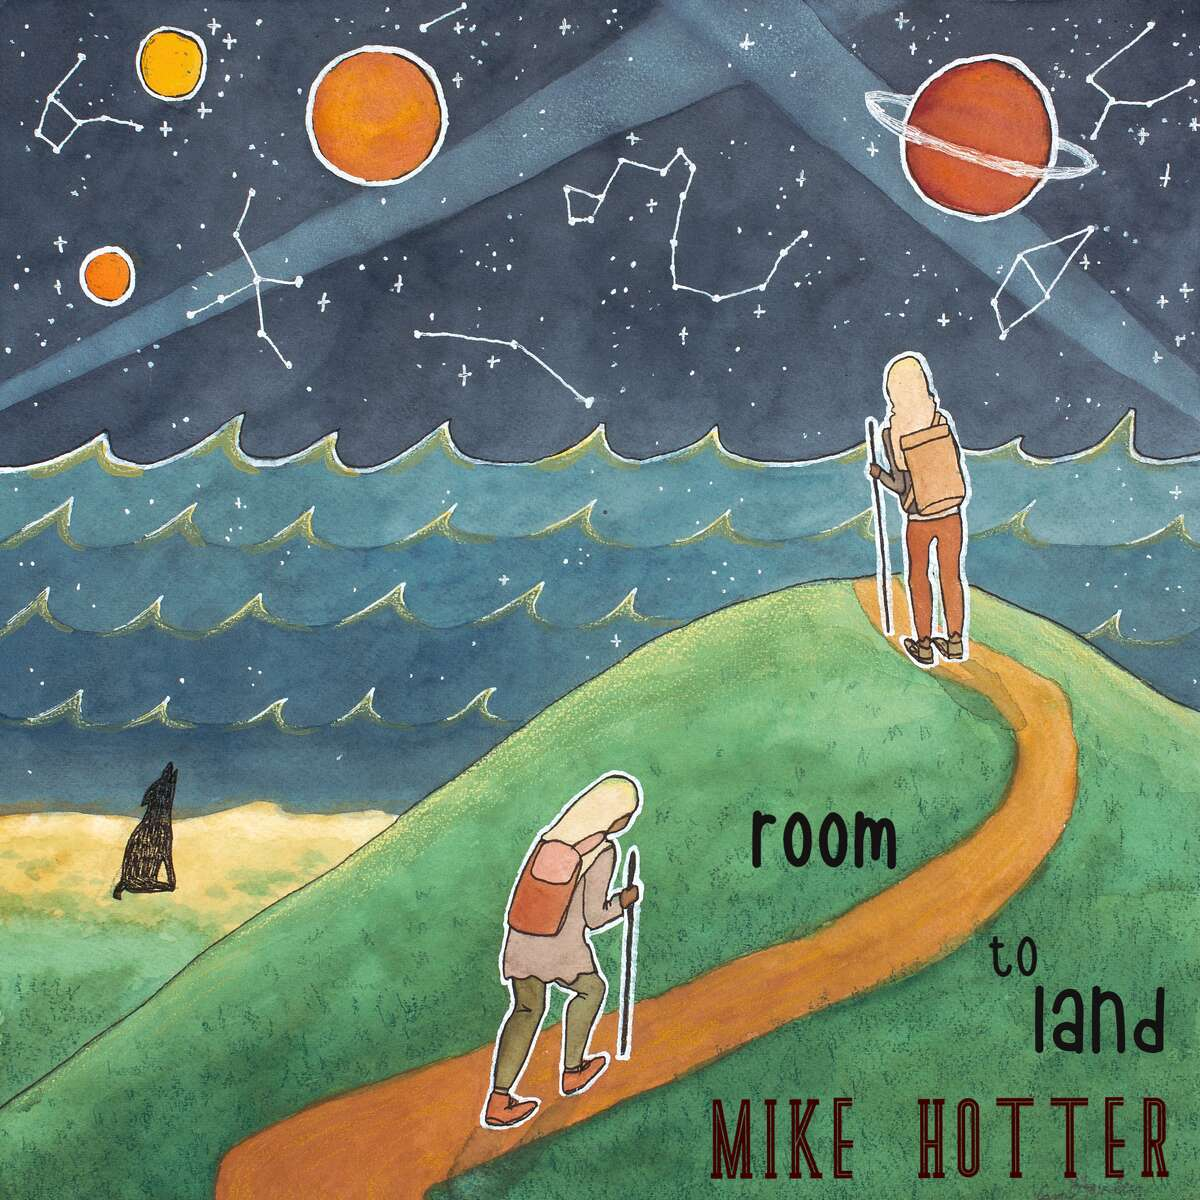 Mike Hotter's release